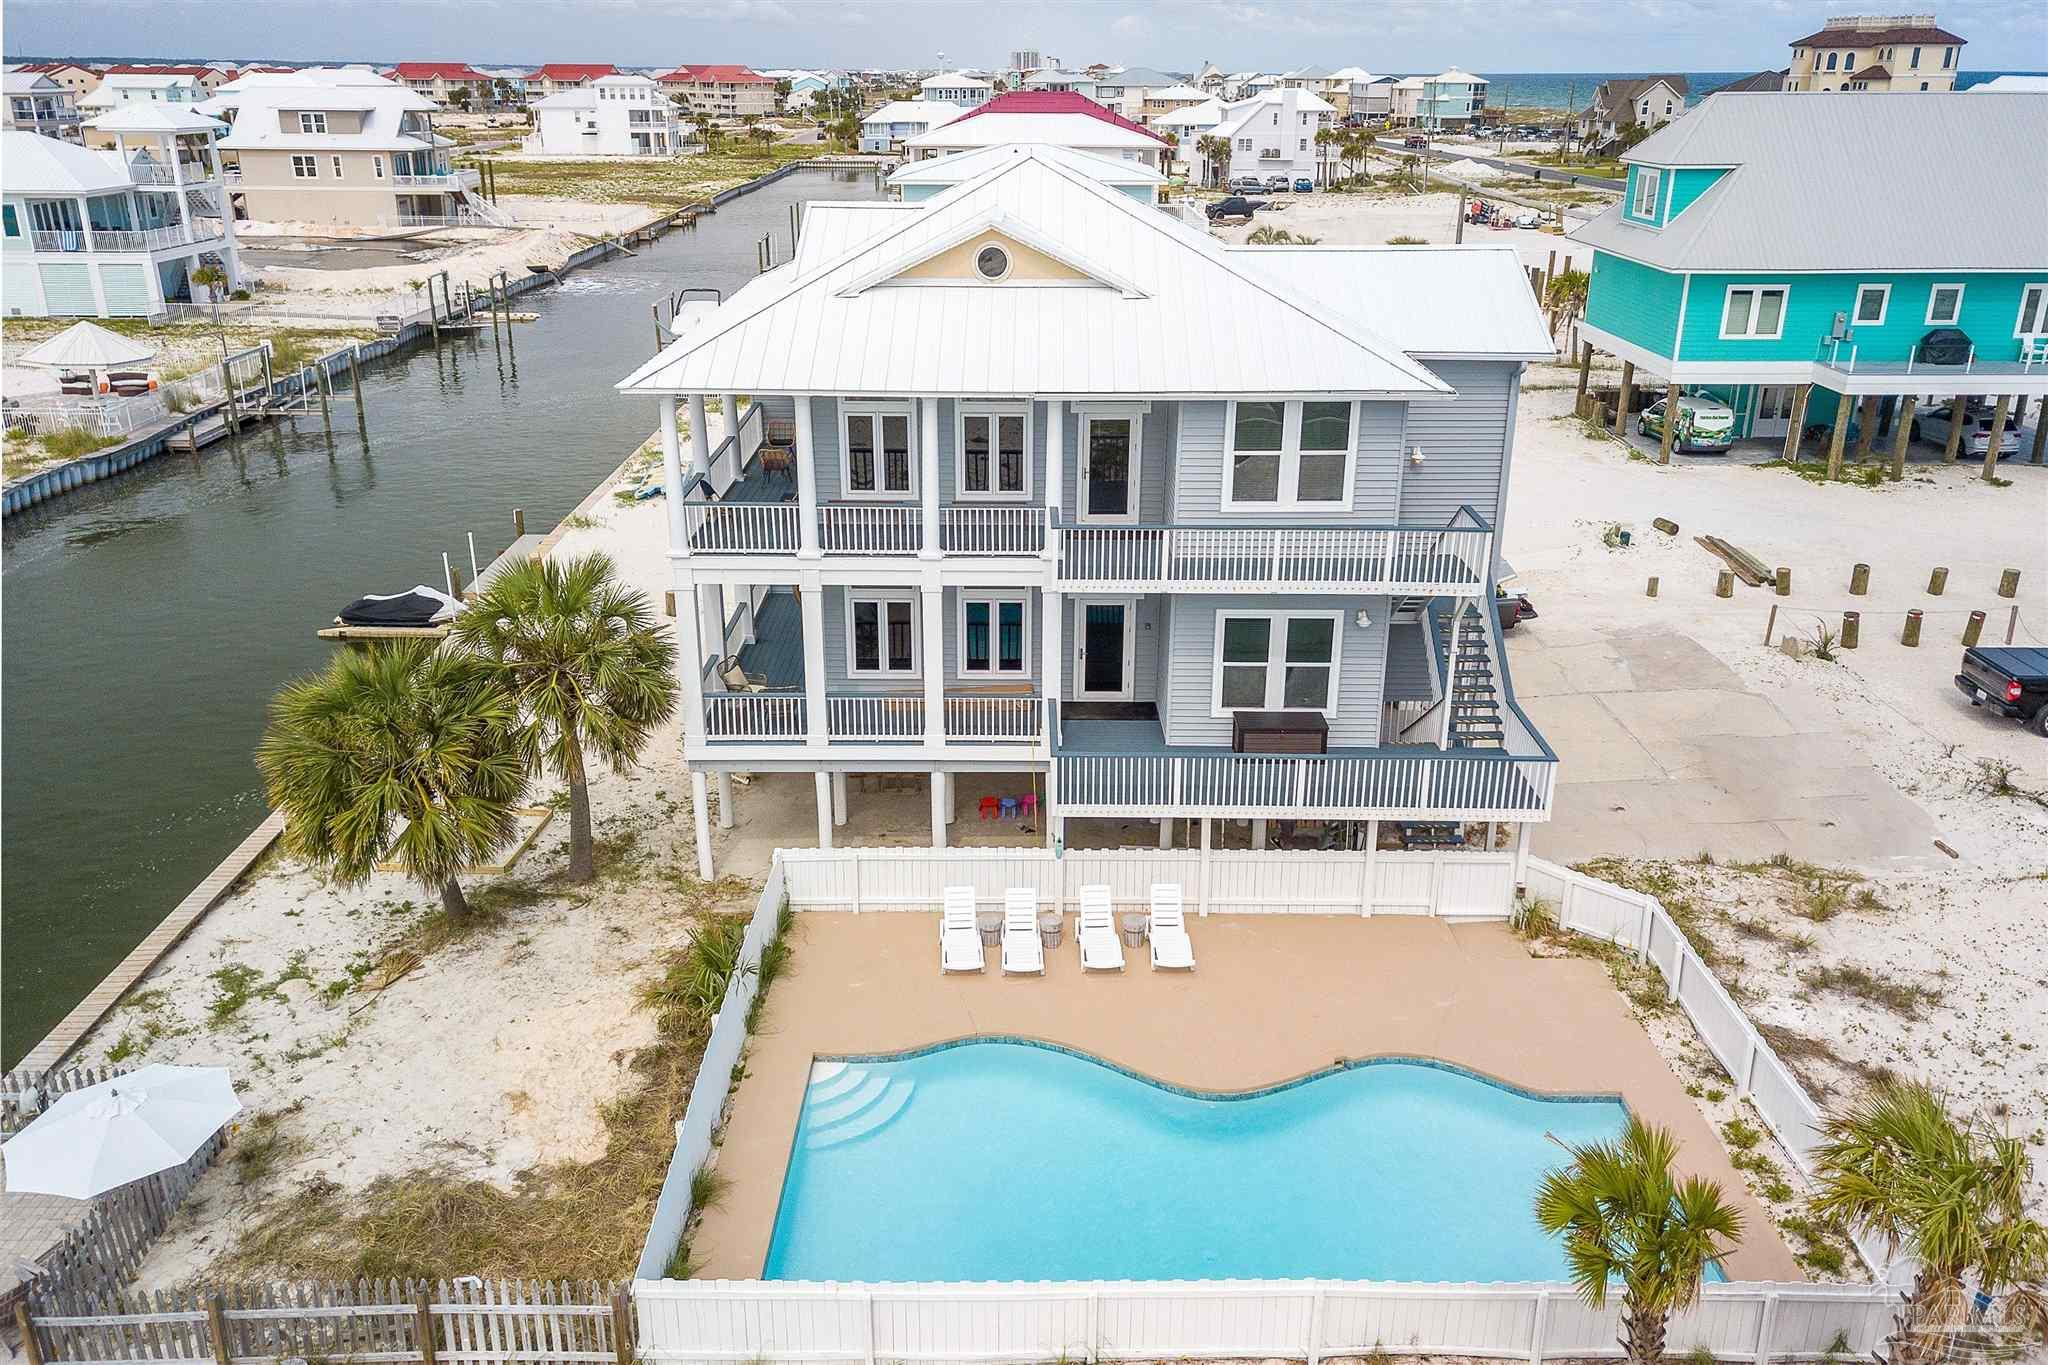 LOCATION LOCATION LOCATION . Waterfront with 90 Feet of canal. Wonderfully remodeled and interior Designed to a high standard. No HOA, This location is stunning , Boasting a New seawall , & Recently dredged canal . Breathtaking views and steps to the public Beach access. The beach house has its own private in ground pool , Recently re Plastered with warranty . Great rental potential. Rental Projections of $150k - $160k per year. This is a outstanding property that boasts it all. Huge updated kitchen / stainless appliances and stunning wrap around decks / Cathedral Ceilings/ Impact Windows. The list goes on and on. More photos and virtual tour to follow soon